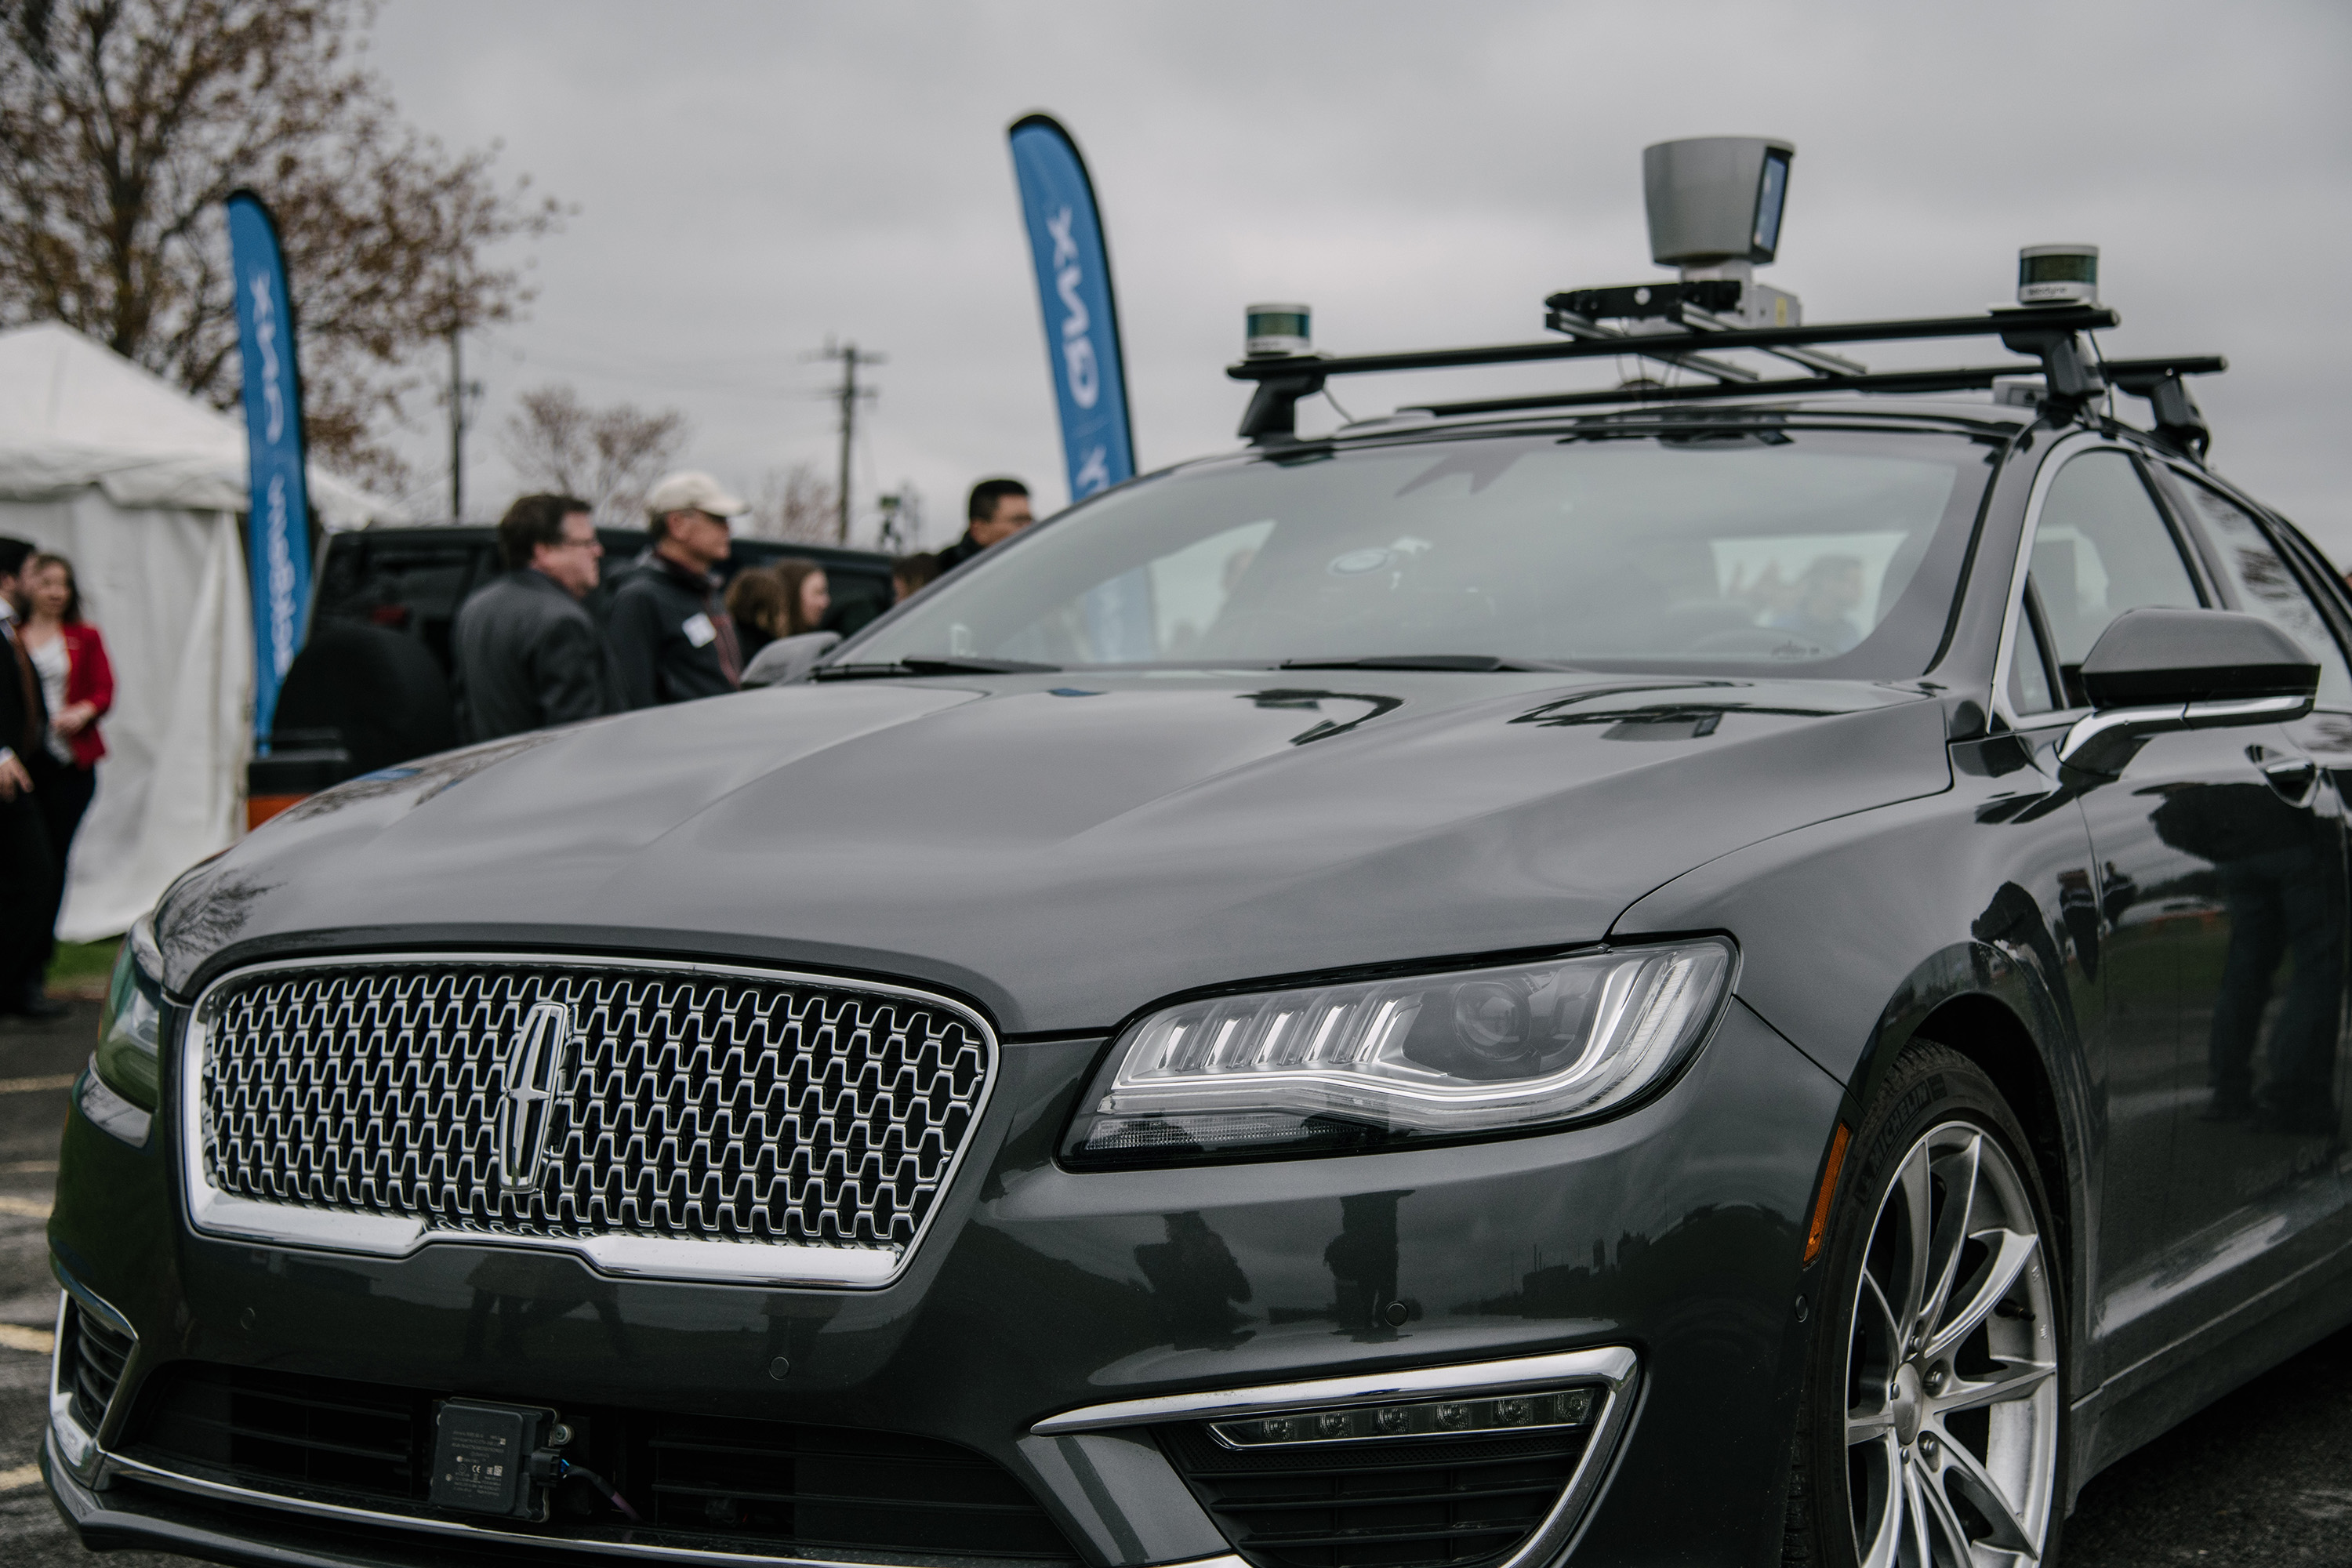 Blackberry QNX Connected autonomous vehicle